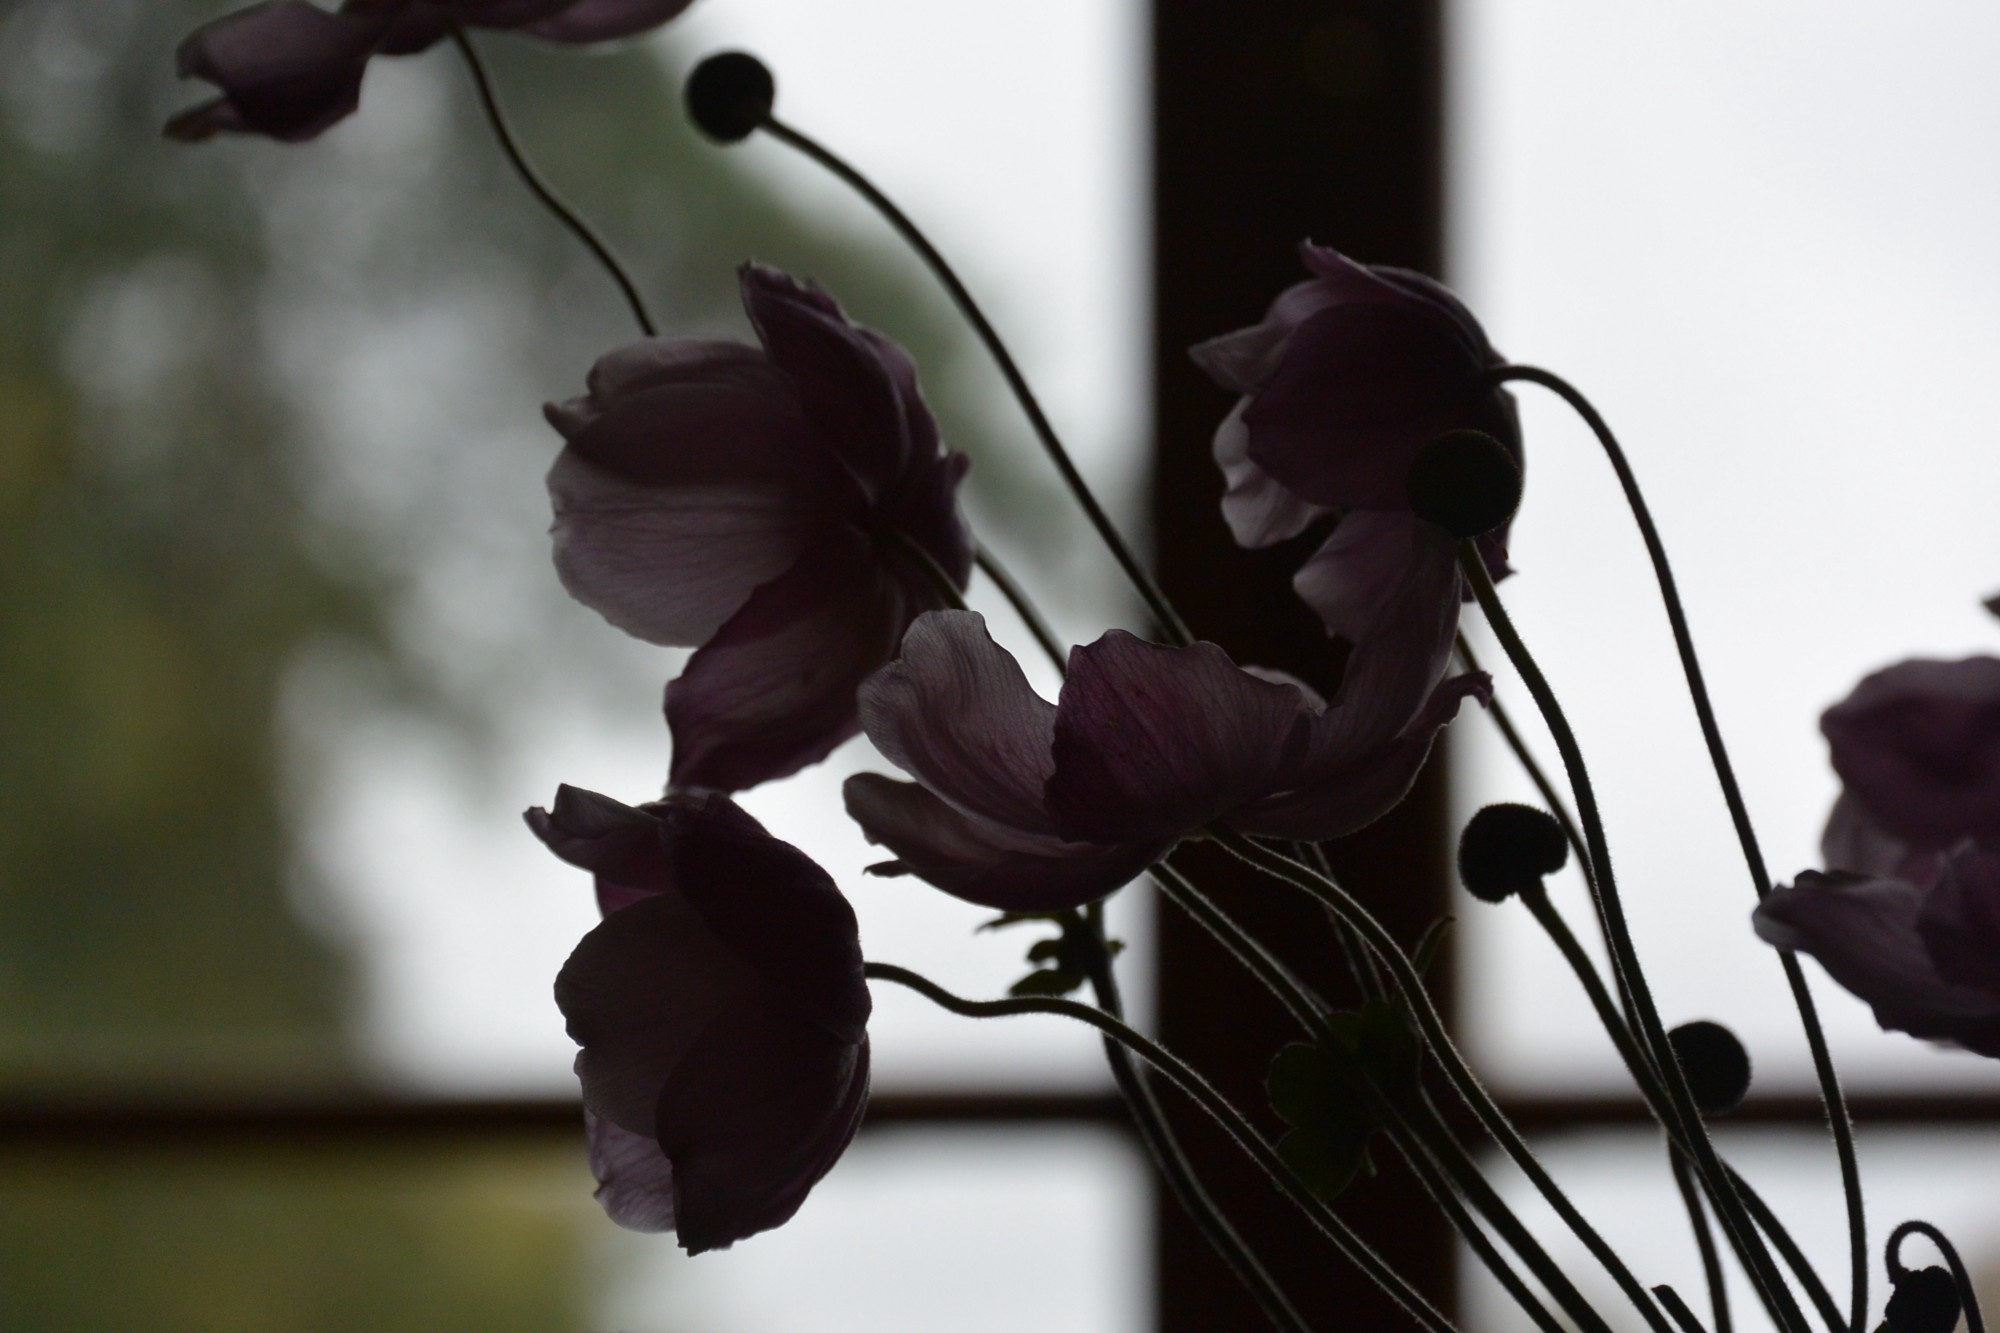 Pinkish flowers on thin stems in front of a window. Image mood is dark and moody.